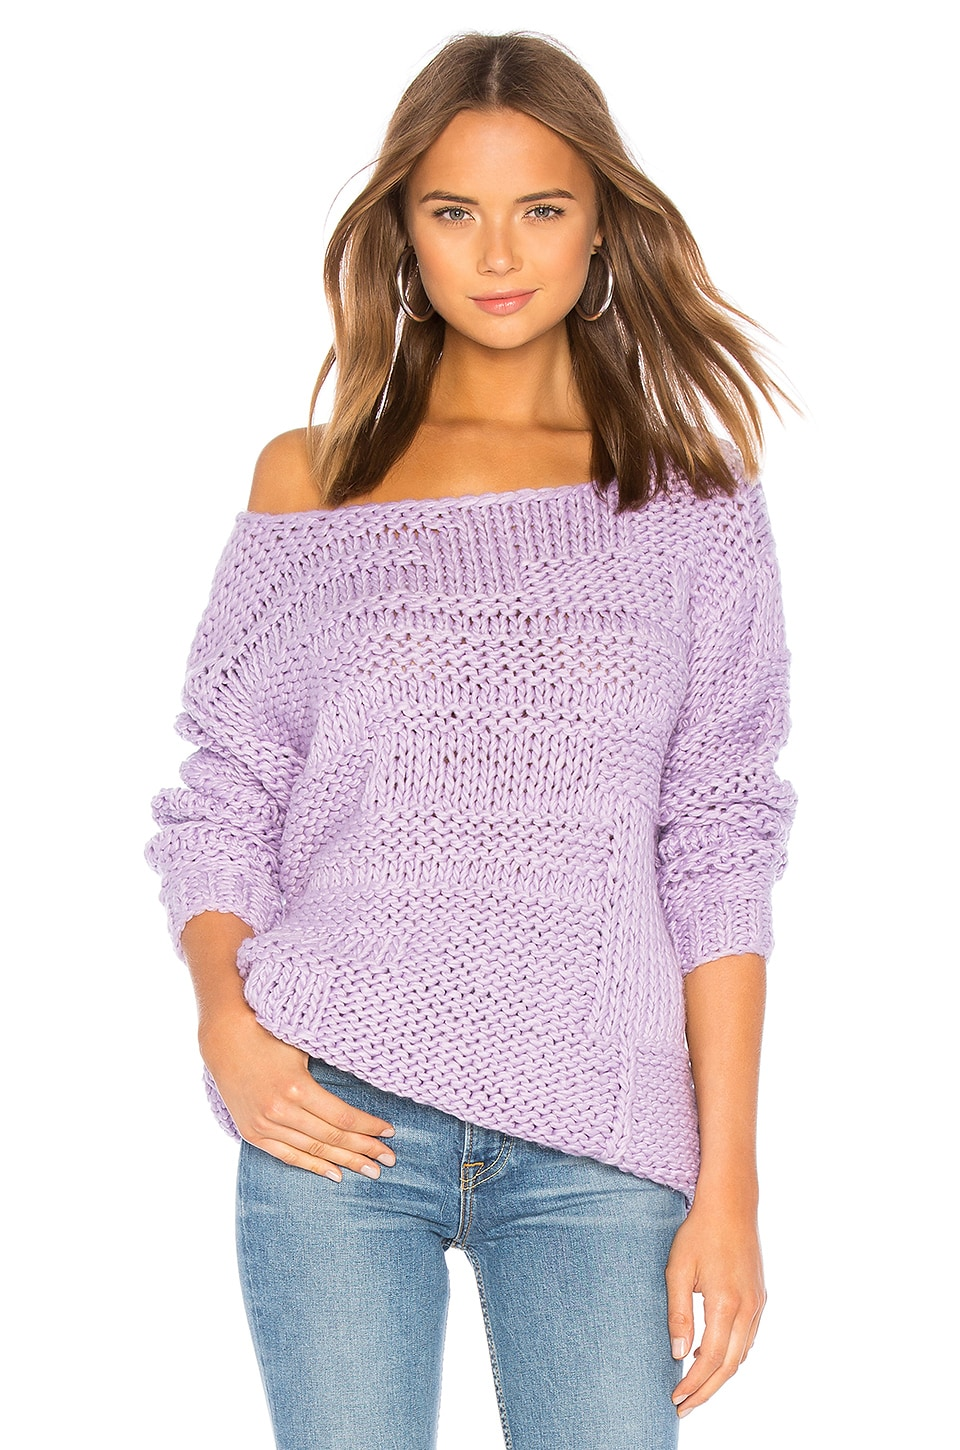 Lovers + Friends Vail Sweater in Lavender